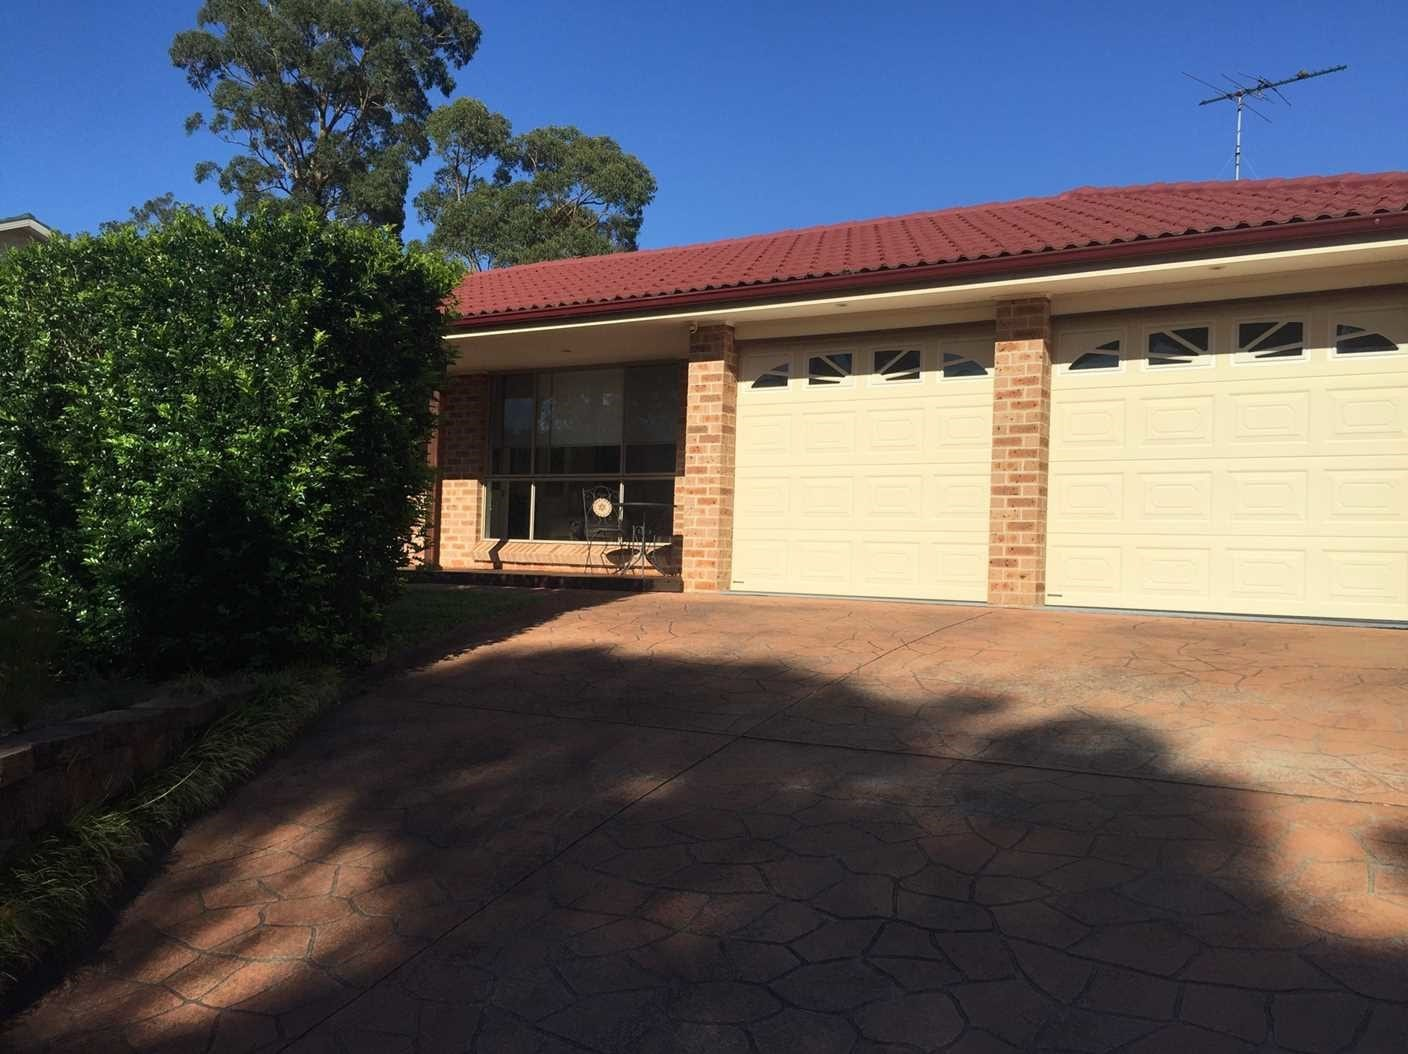 House Check Nsw 43 Spoonbill Ave Woronora Heights Nsw 2233 Housecheck Nsw